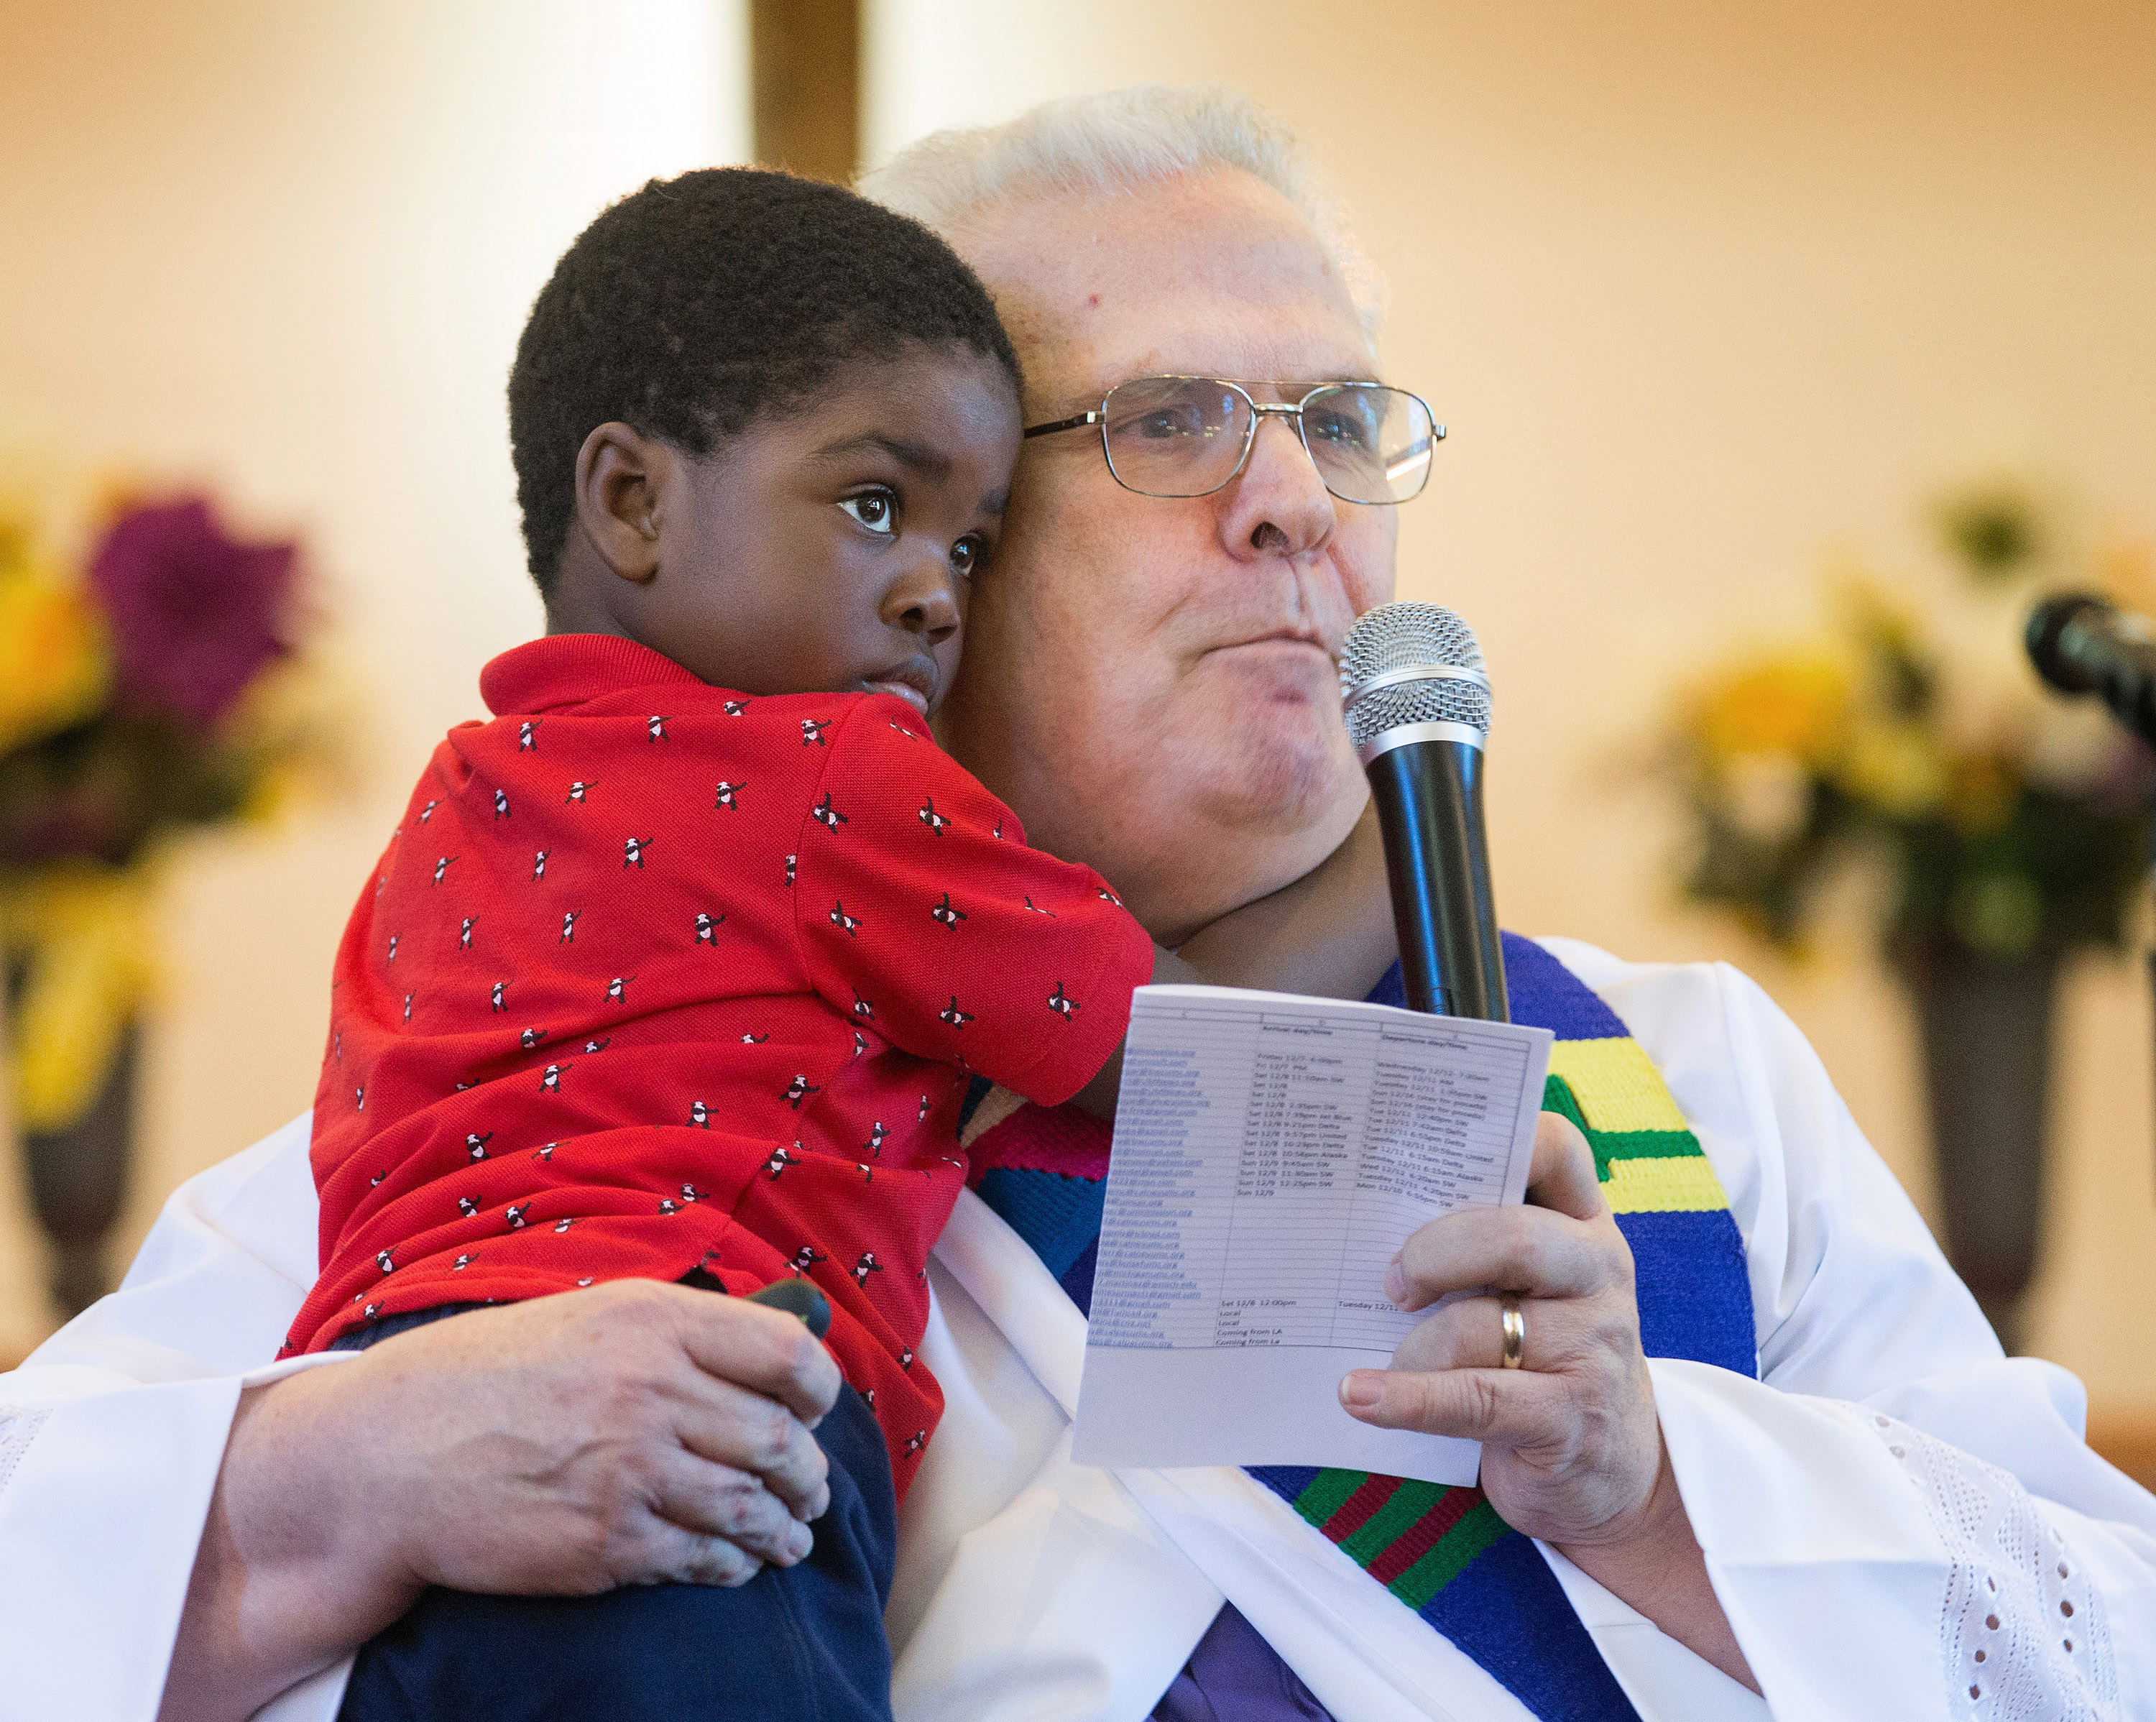 TThe Rev. Bill Jenkins gives the sermon during worship at Exodus United Methodist Church in San Diego while holding his foster son Harry, who is from Haiti. The church is the only immigrant-welcoming center in Southern California. Photo by Mike DuBose UM News.